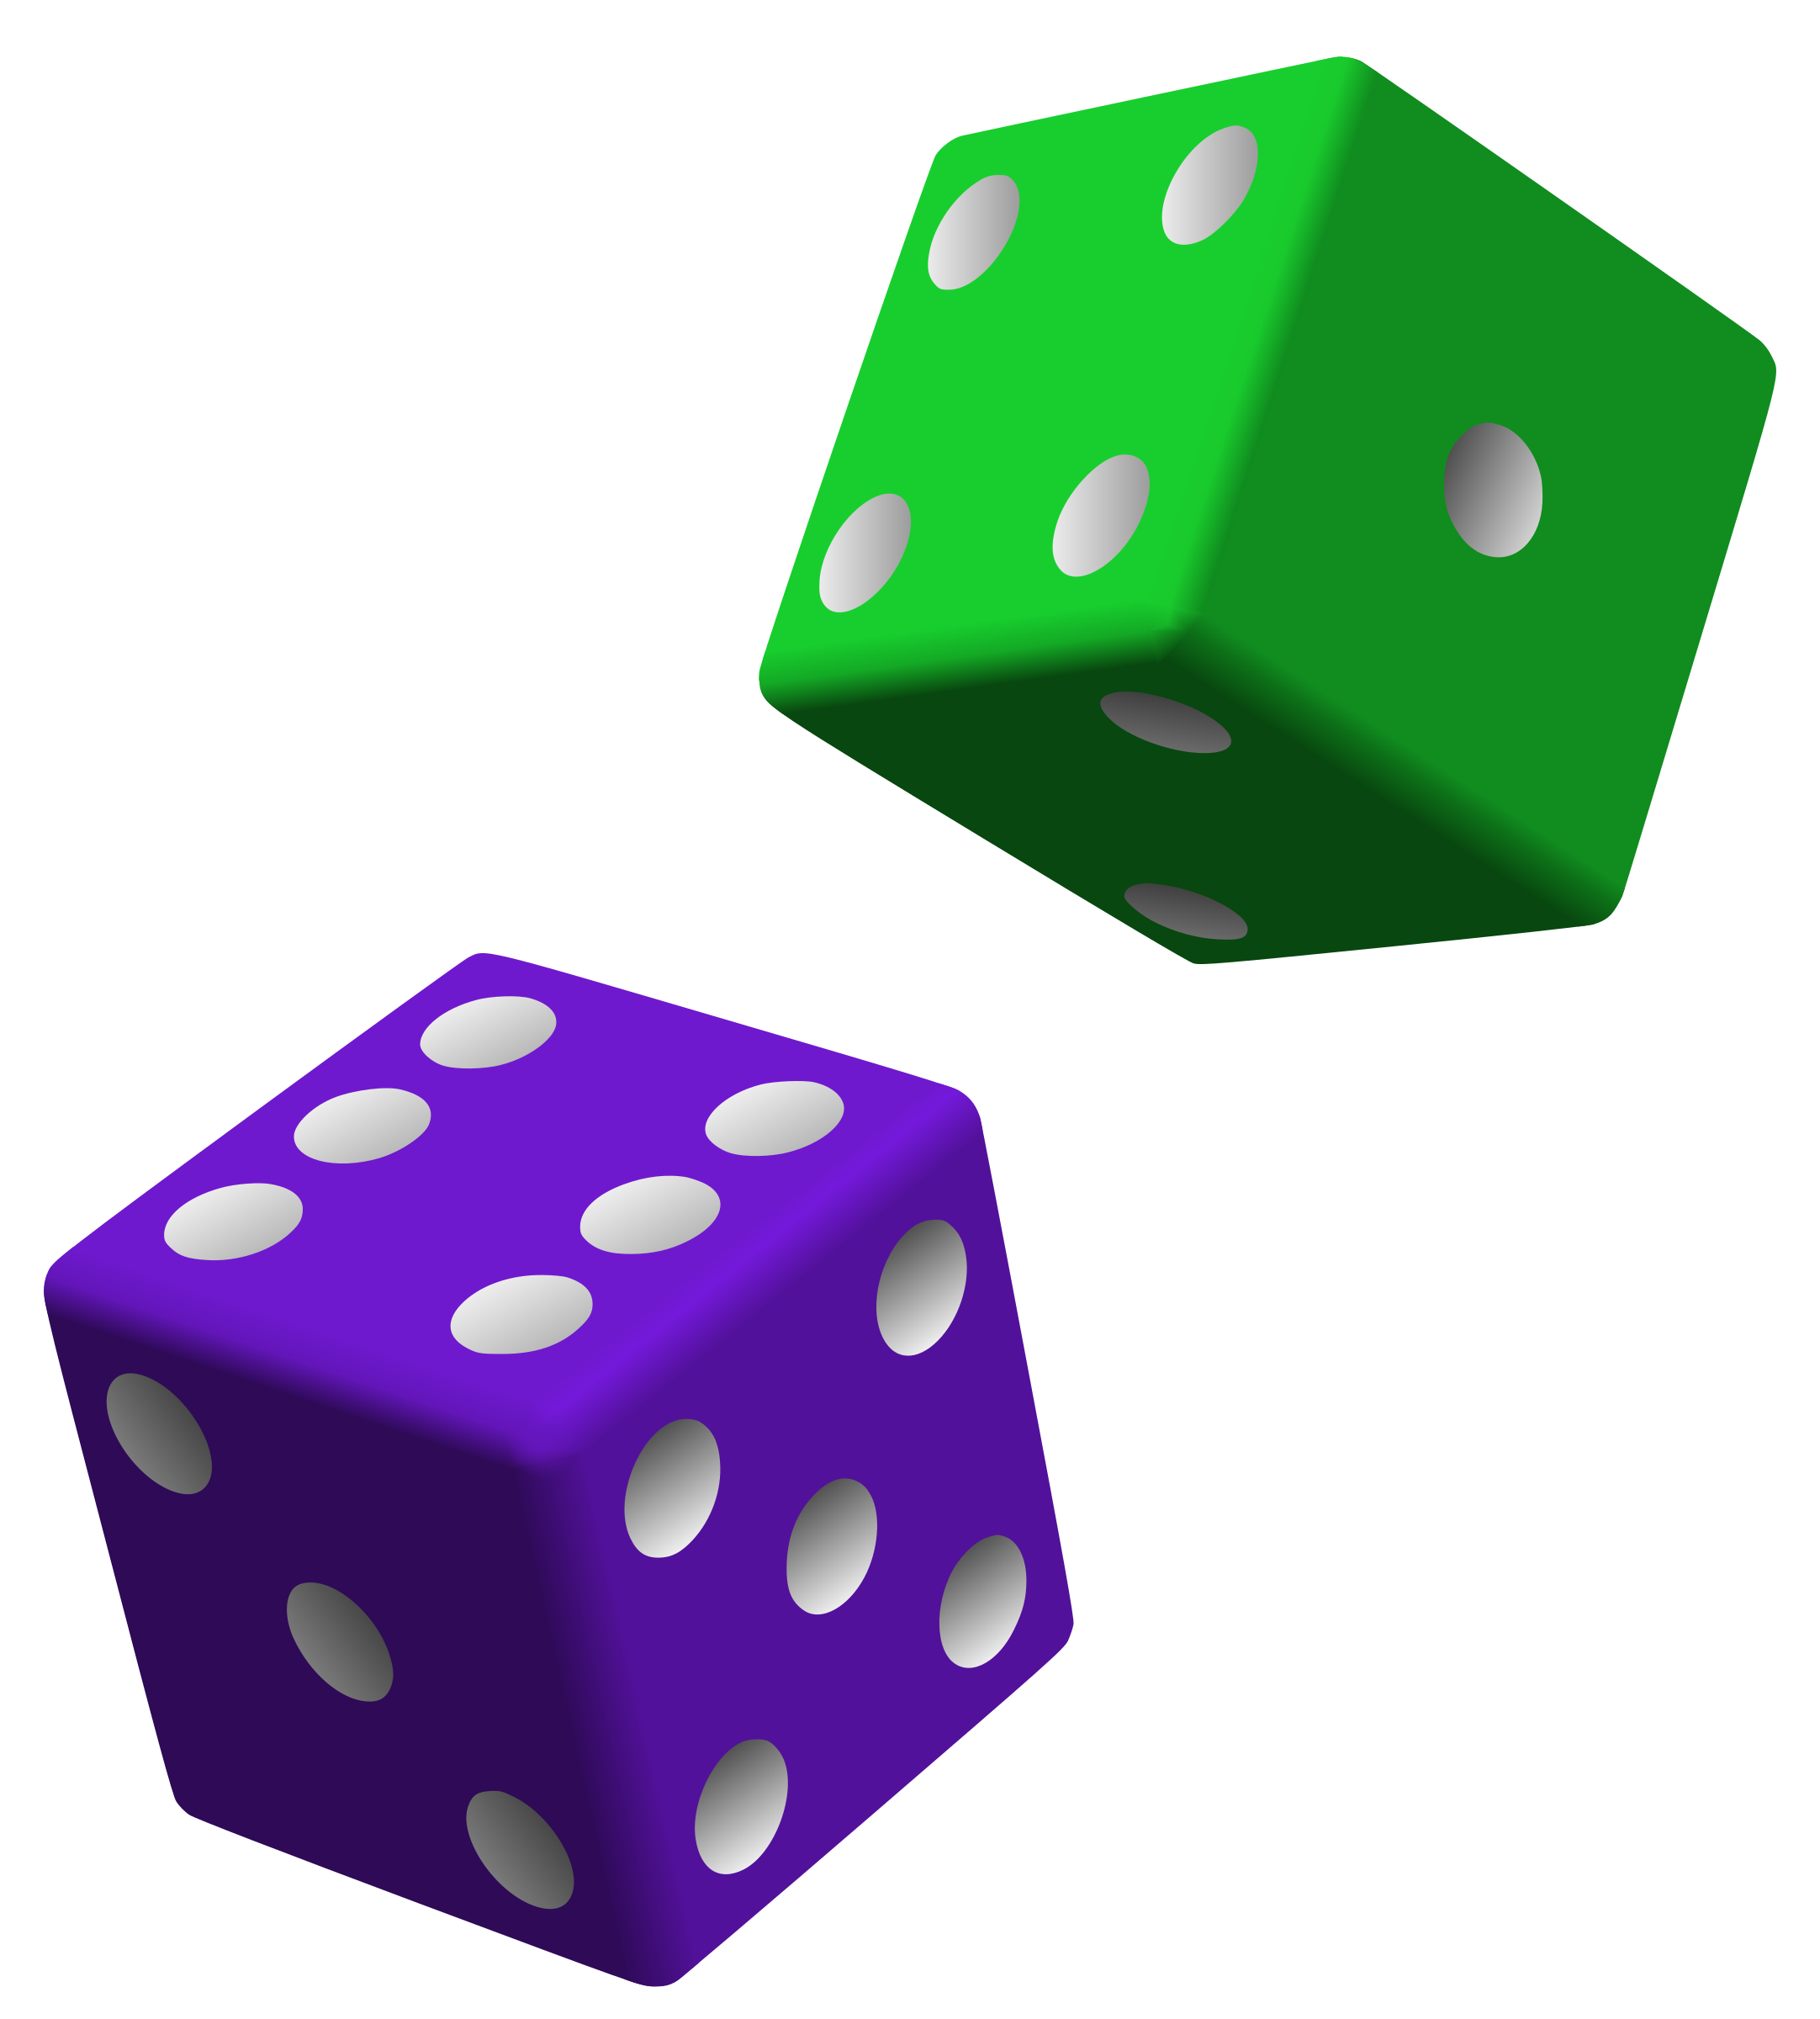 Dice clipart different color. Green and purple big